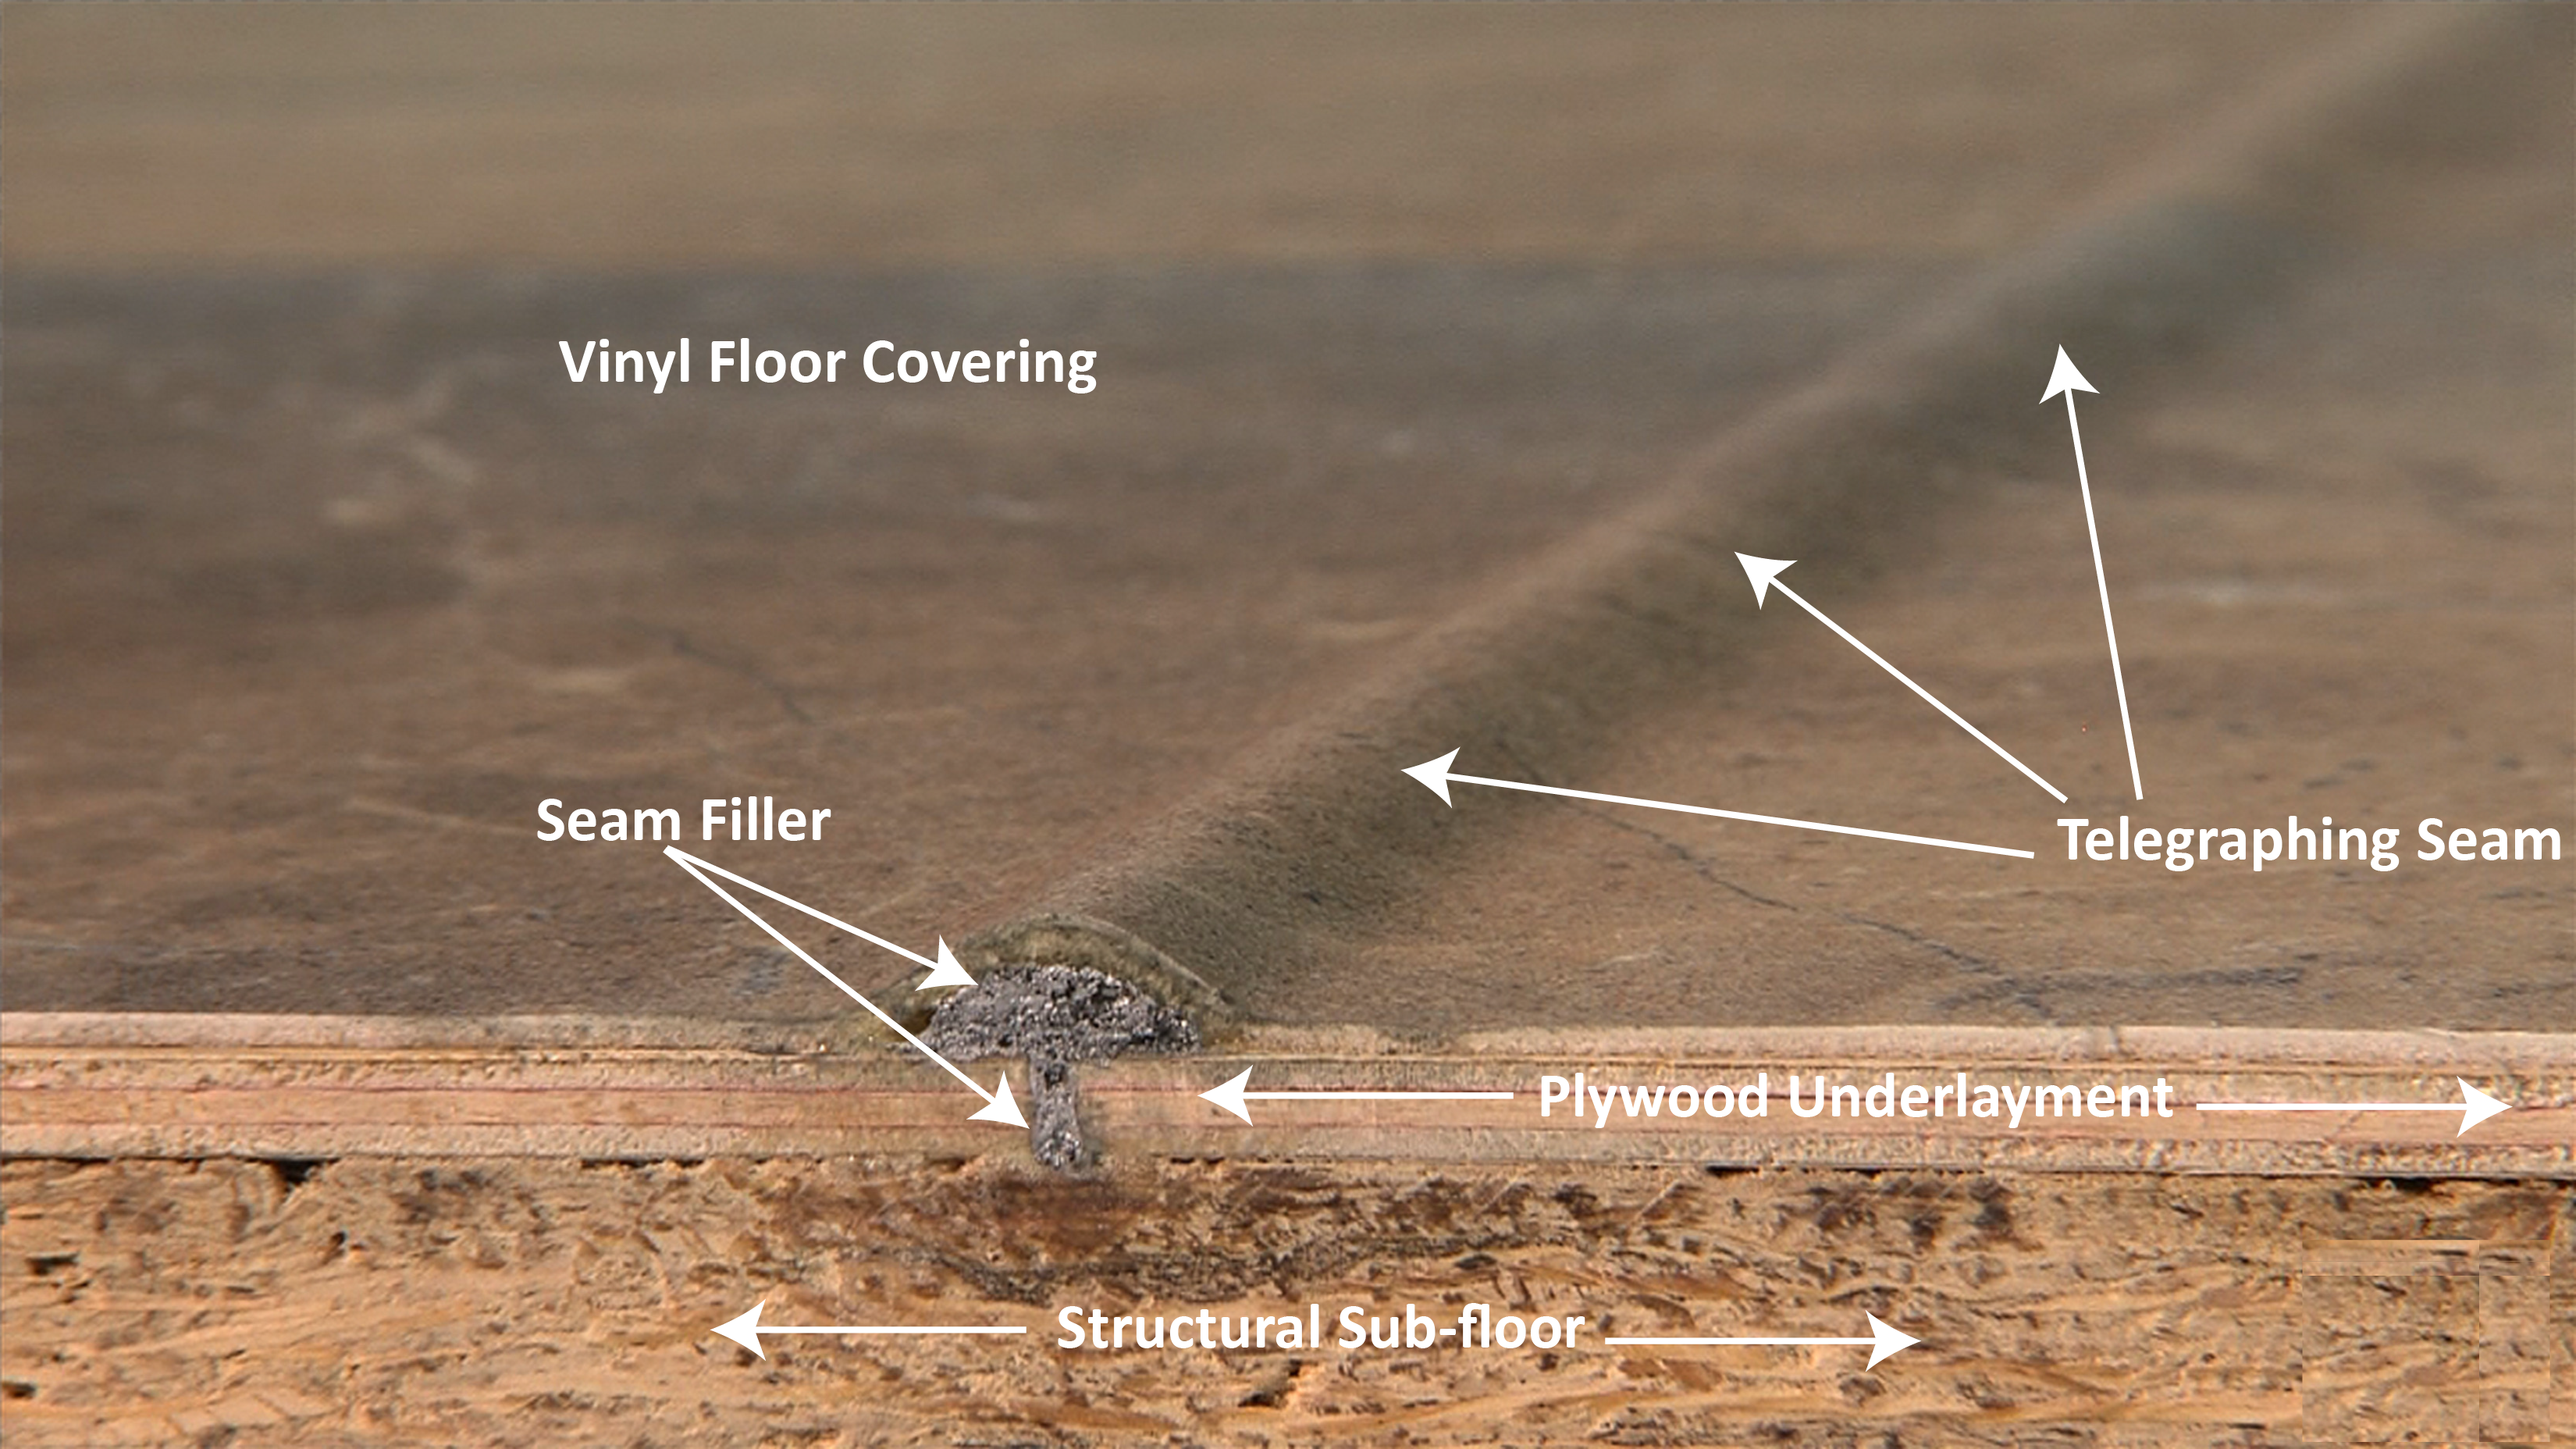 SurePly Plywood Underlayment Installation Guide - Install vinyl flooring over plywood subfloor